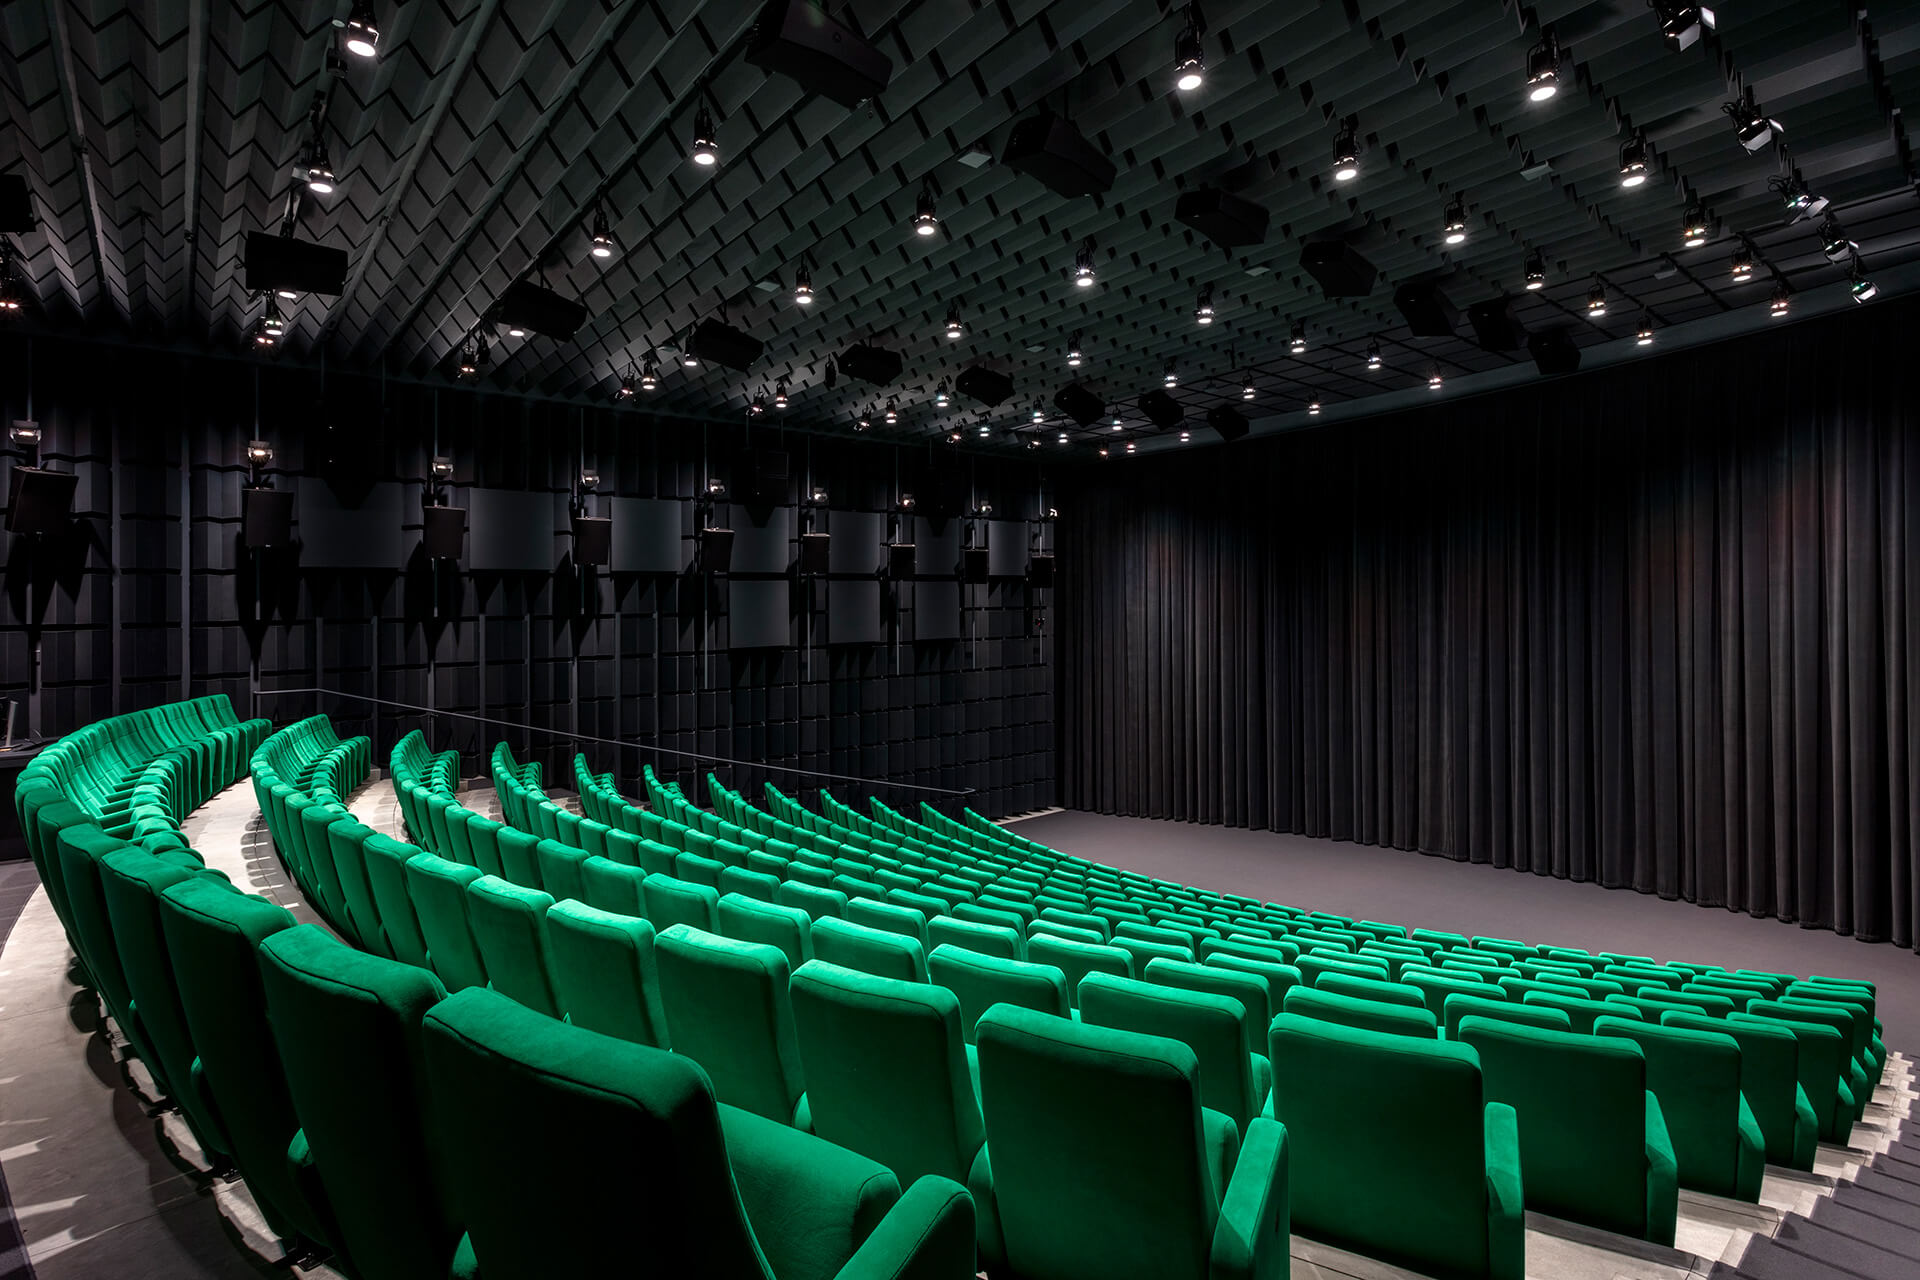 288-seat Ted Mann Theatre | Academy Museum of Motion Pictures | Renzo Piano Building Workshop | STIRworld